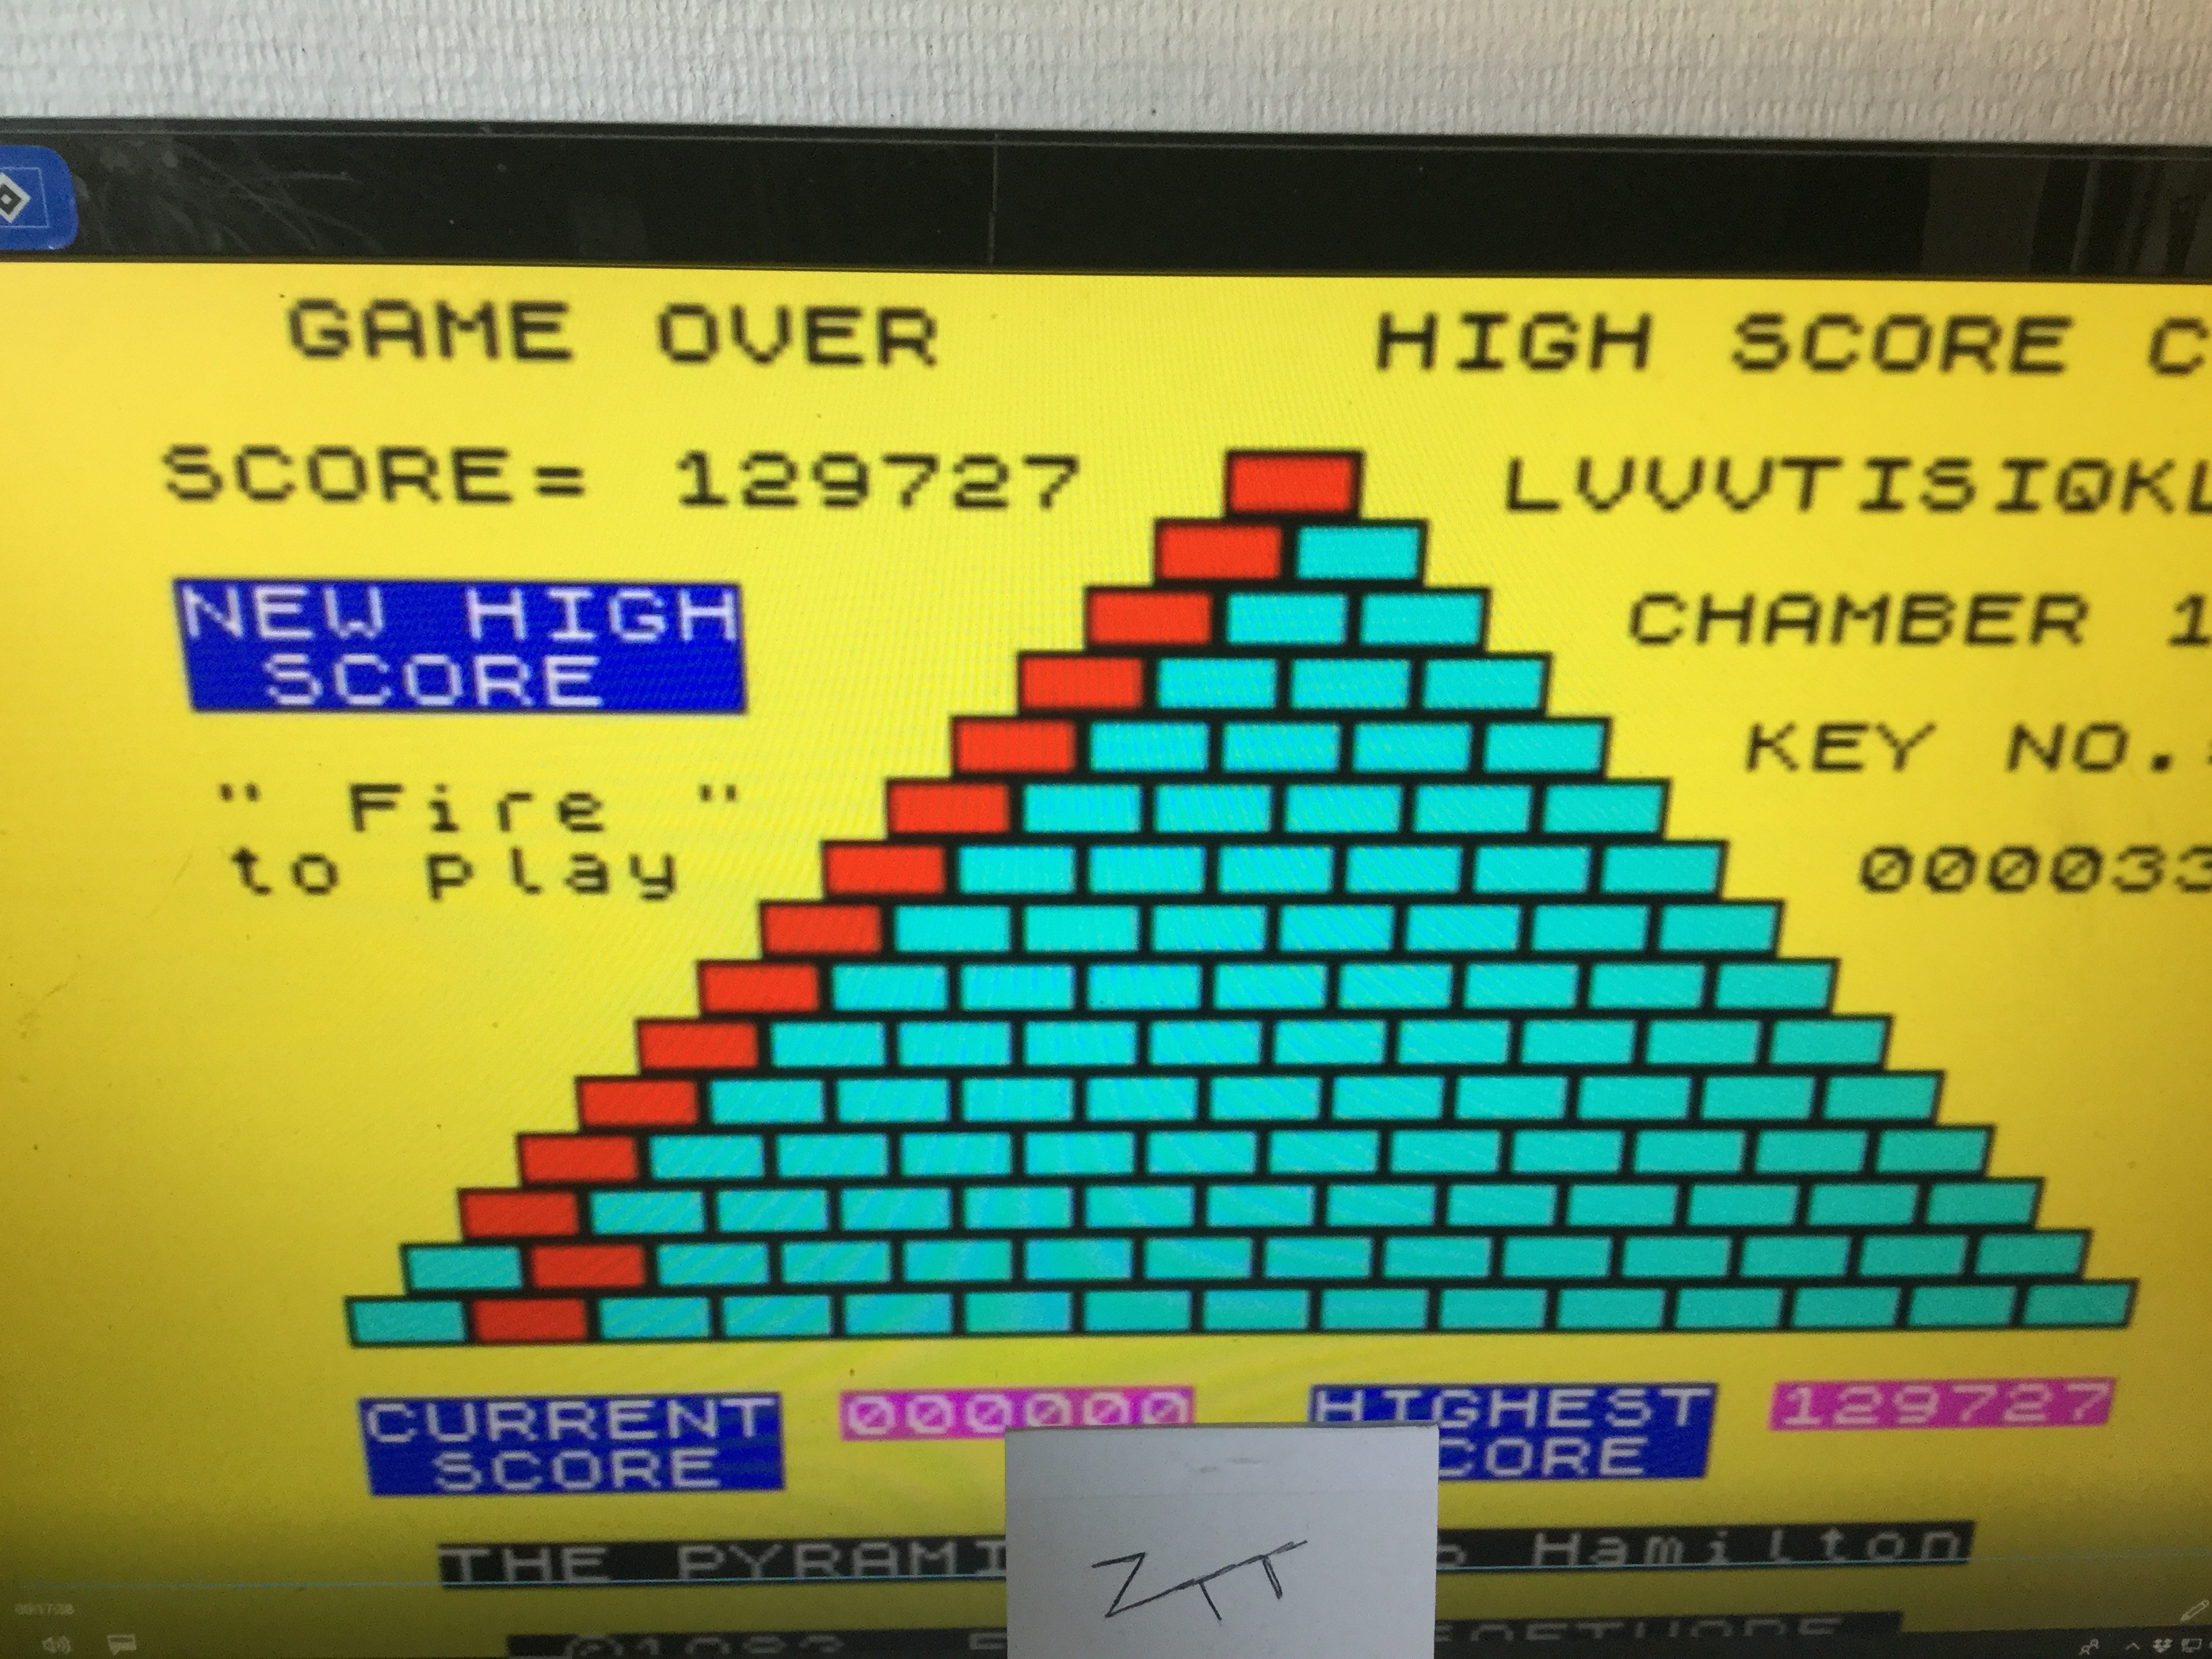 Frankie: The Pyramid (ZX Spectrum Emulated) 129,727 points on 2019-04-27 03:03:04